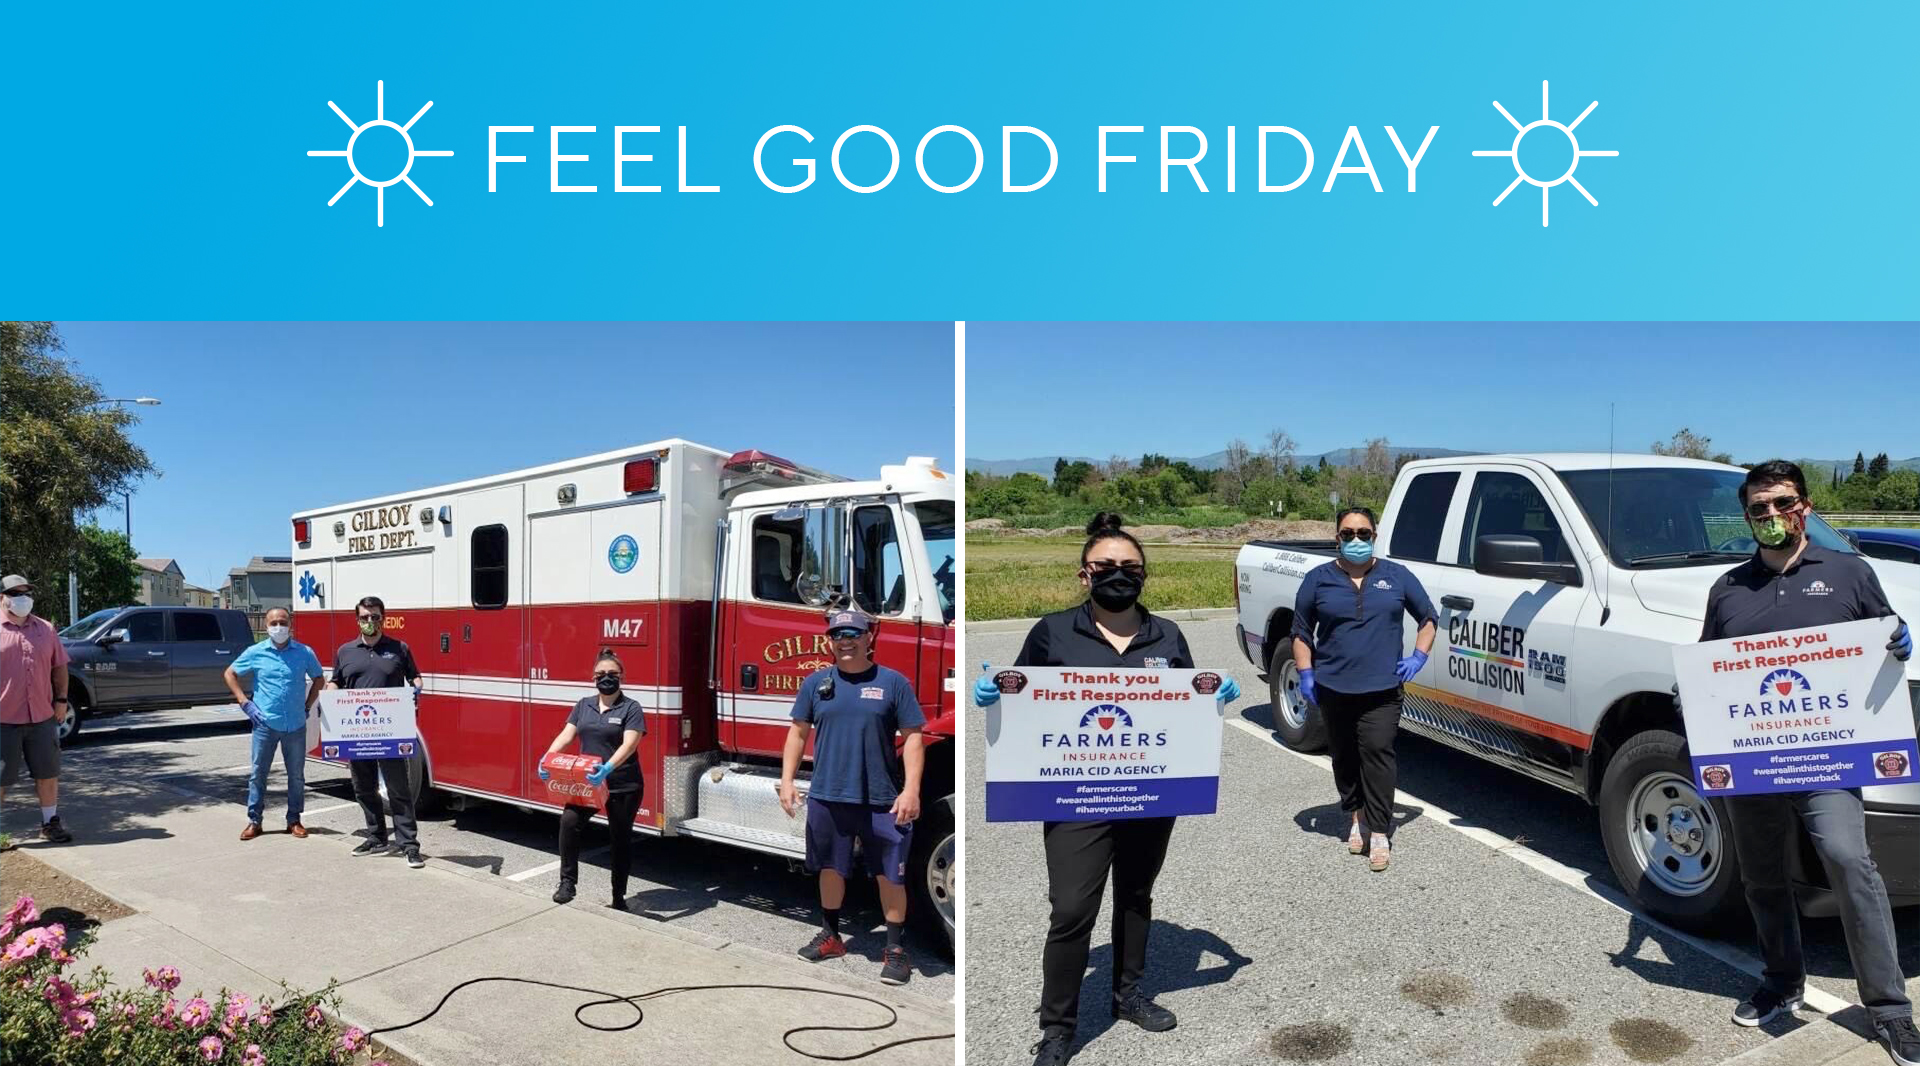 #FeelGoodFriday: Caliber Collision partners with Farmers Insurance to deliver hot meals to first responders landscape